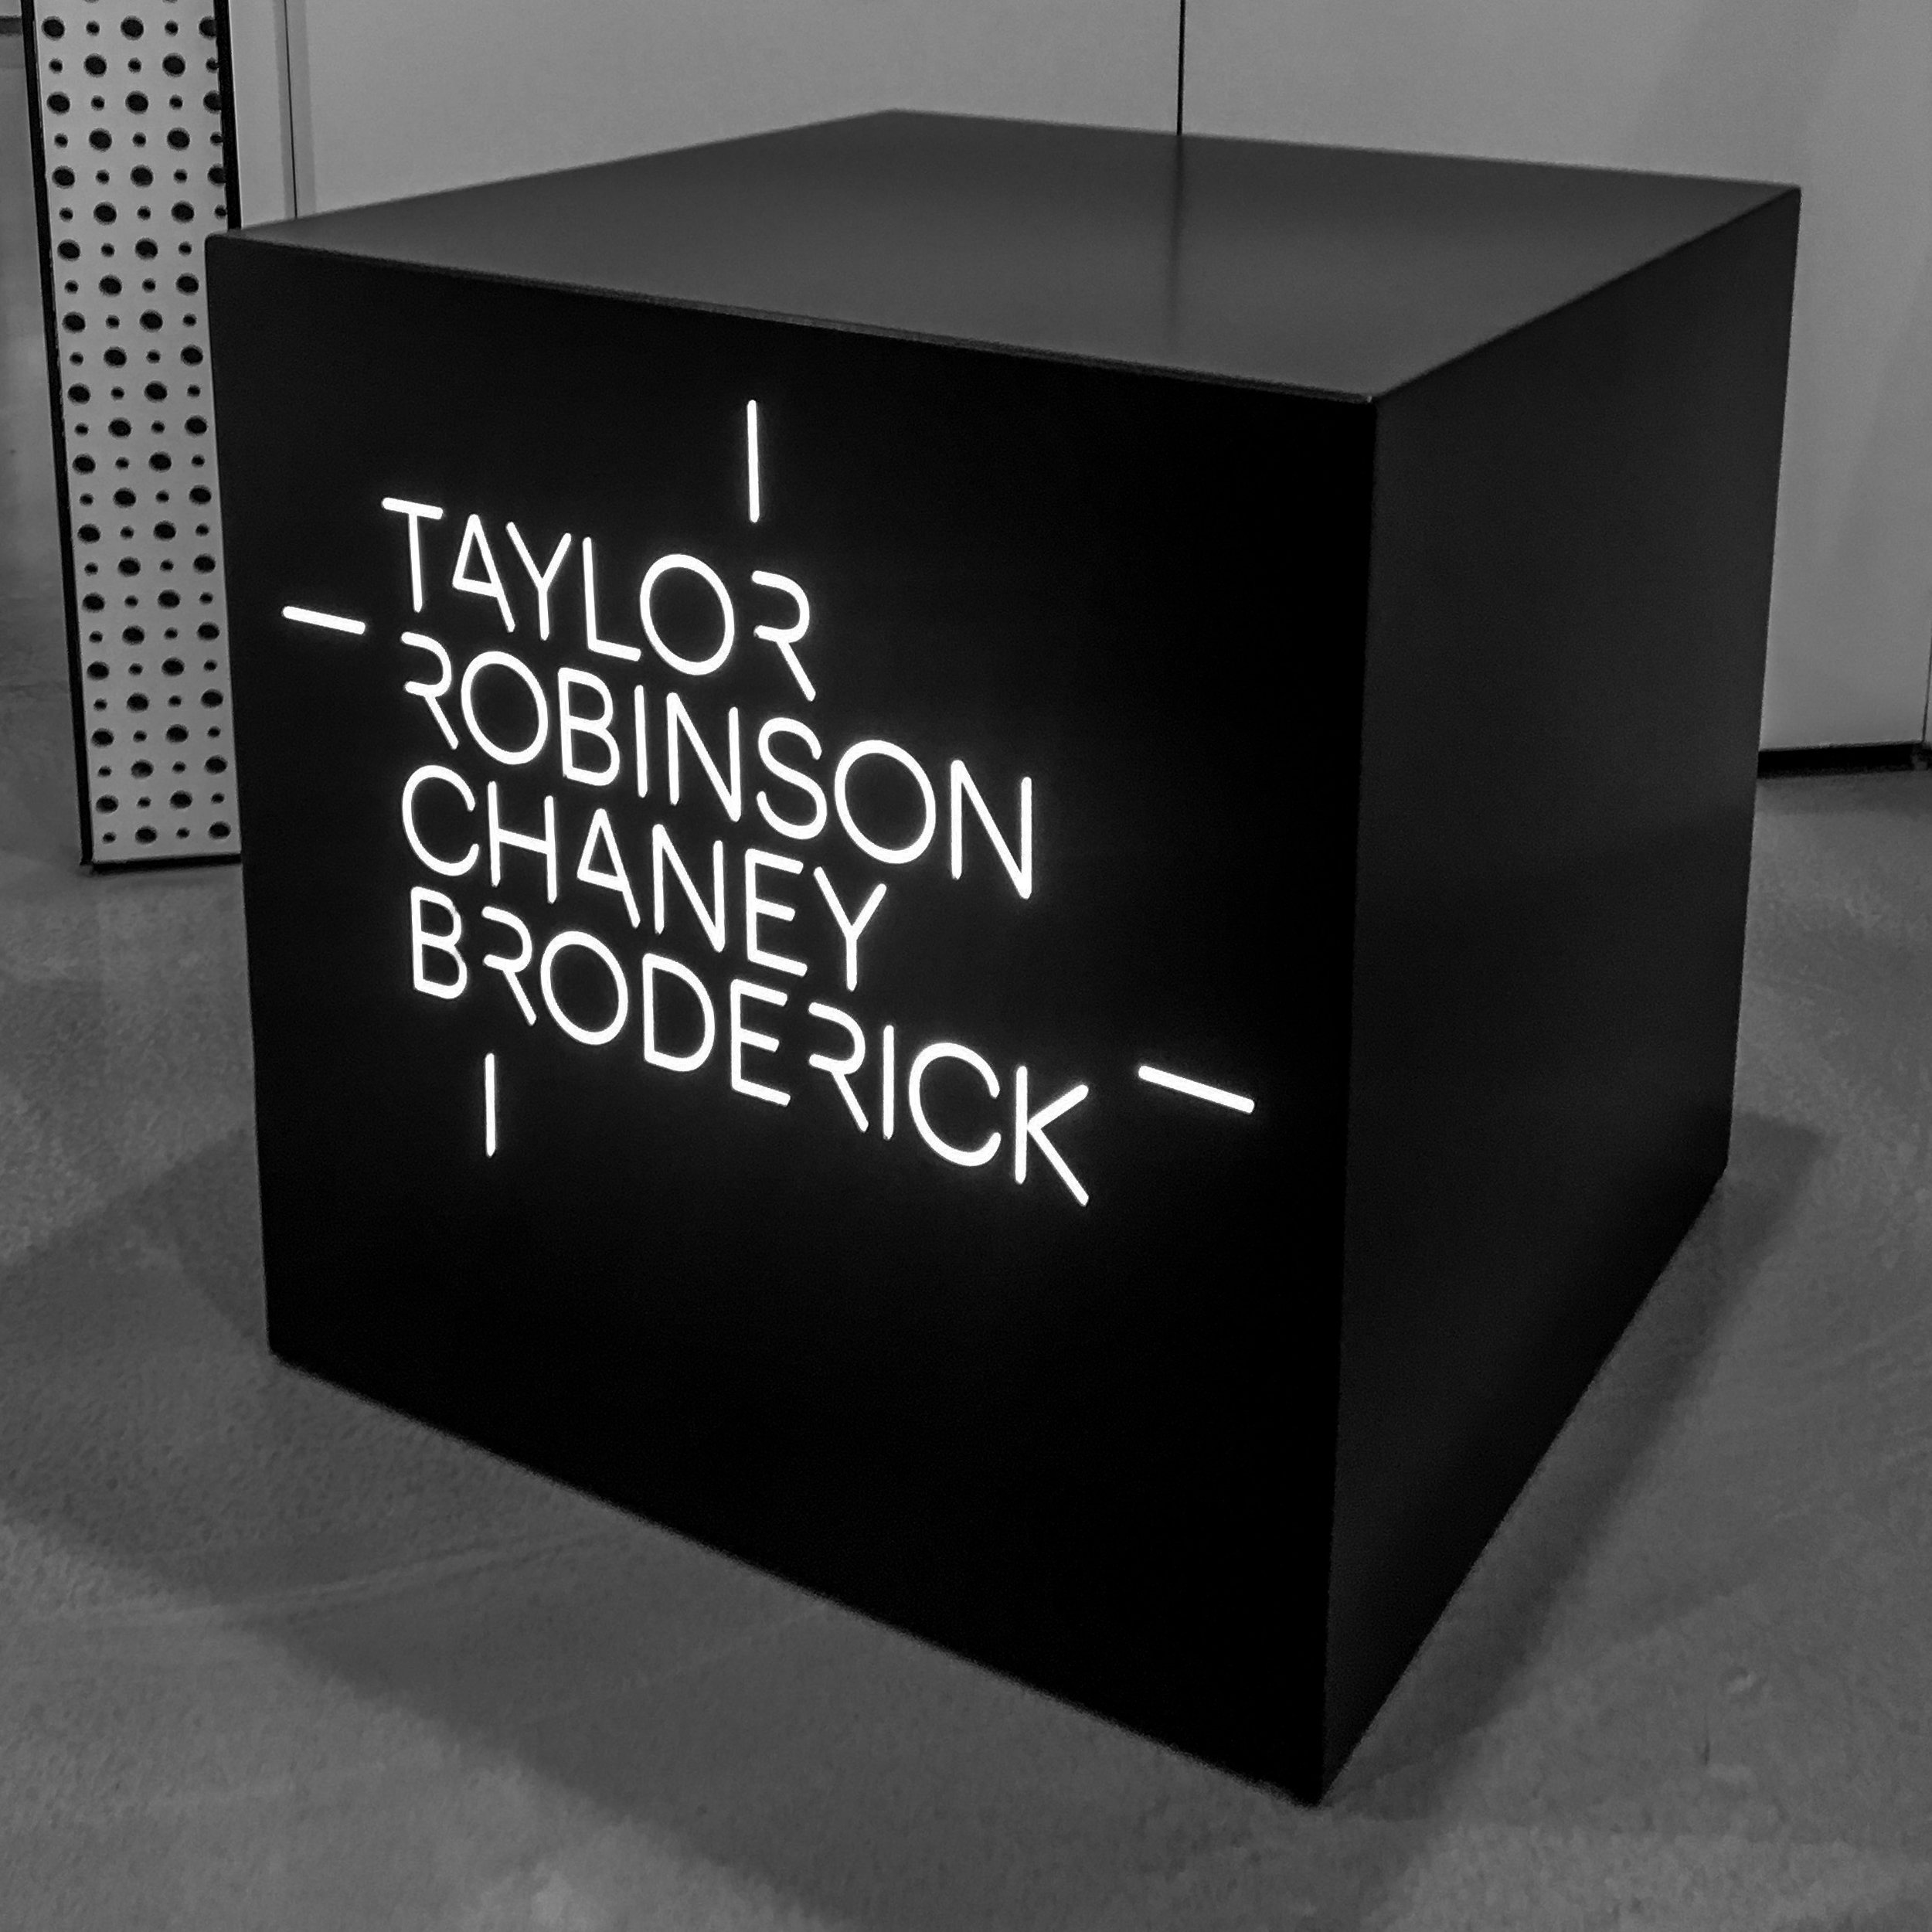 Taylor Robinson Chaney Broderick– Lightbox cube